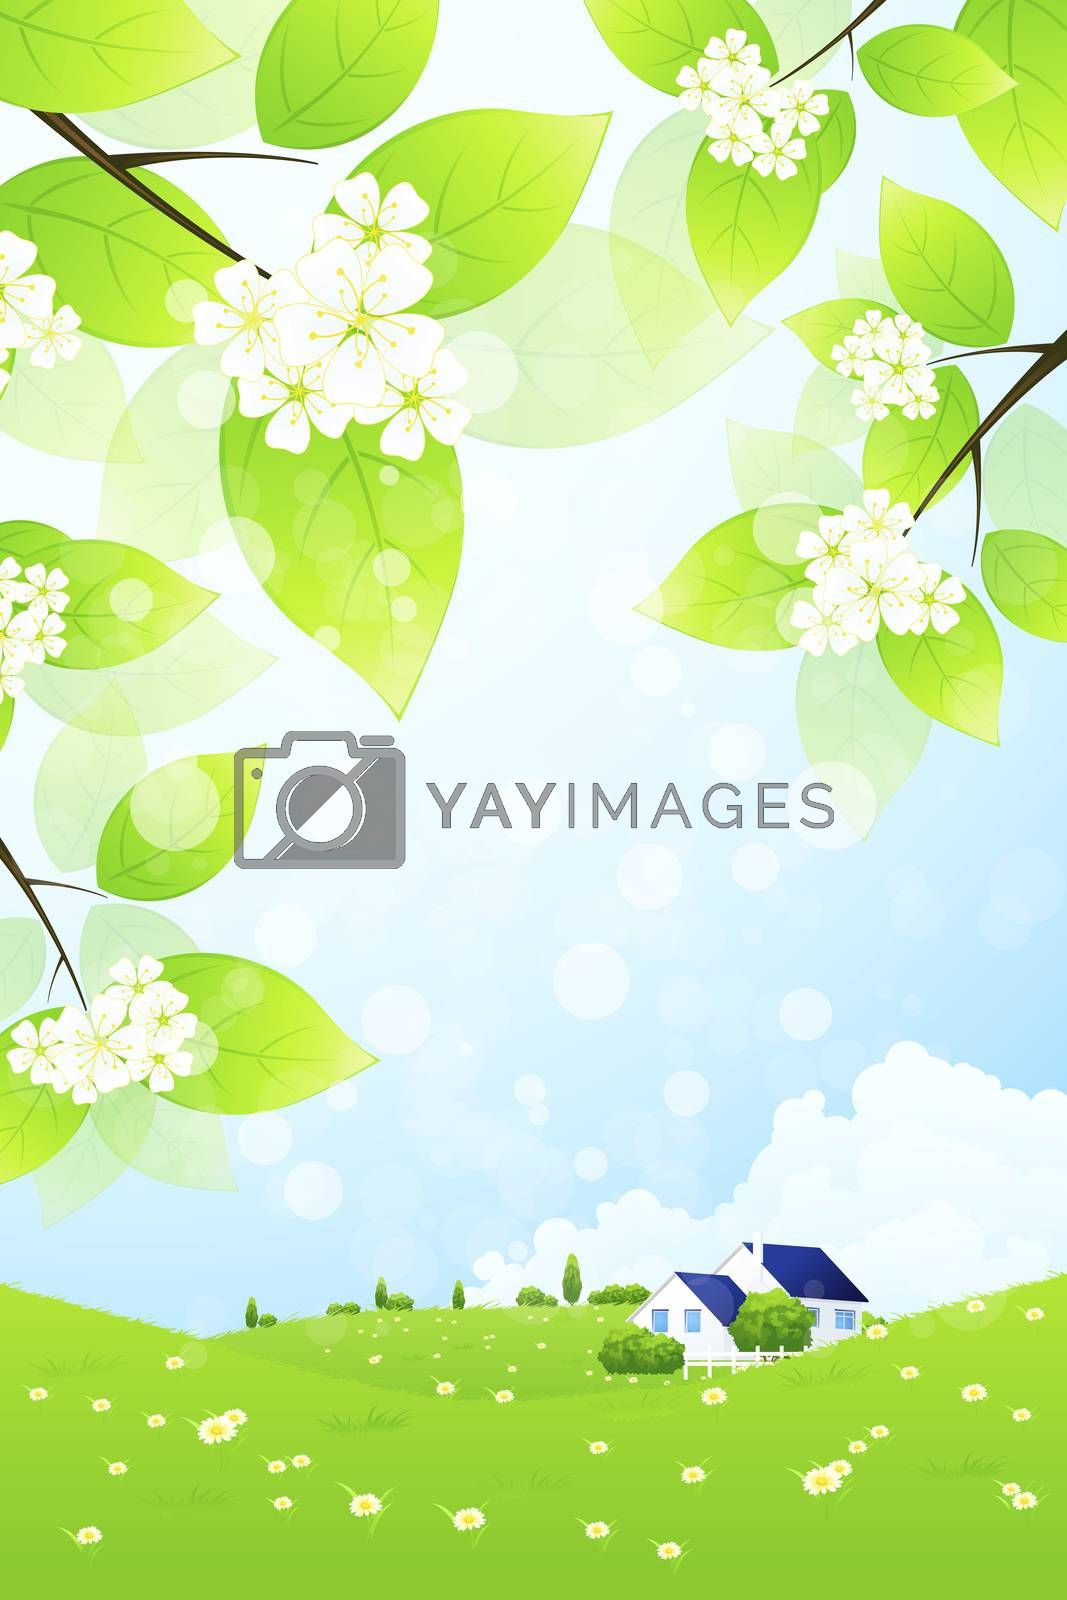 Green Landscape with House by WaD